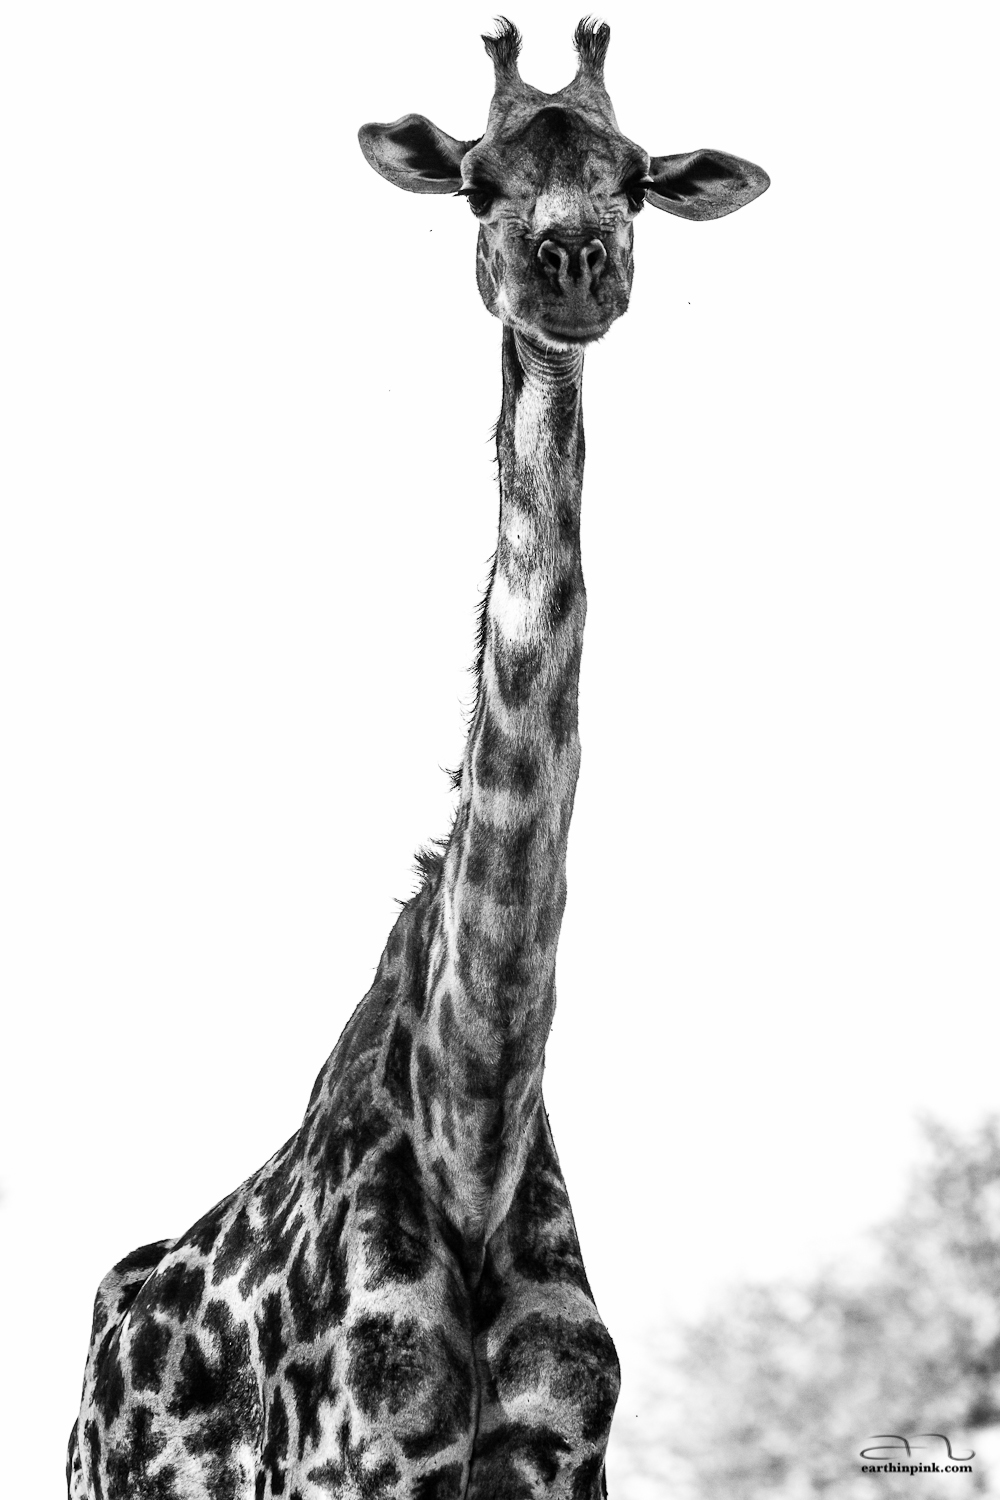 A curious giraffe poses for the camera in Tarangire National Park, Tanzania